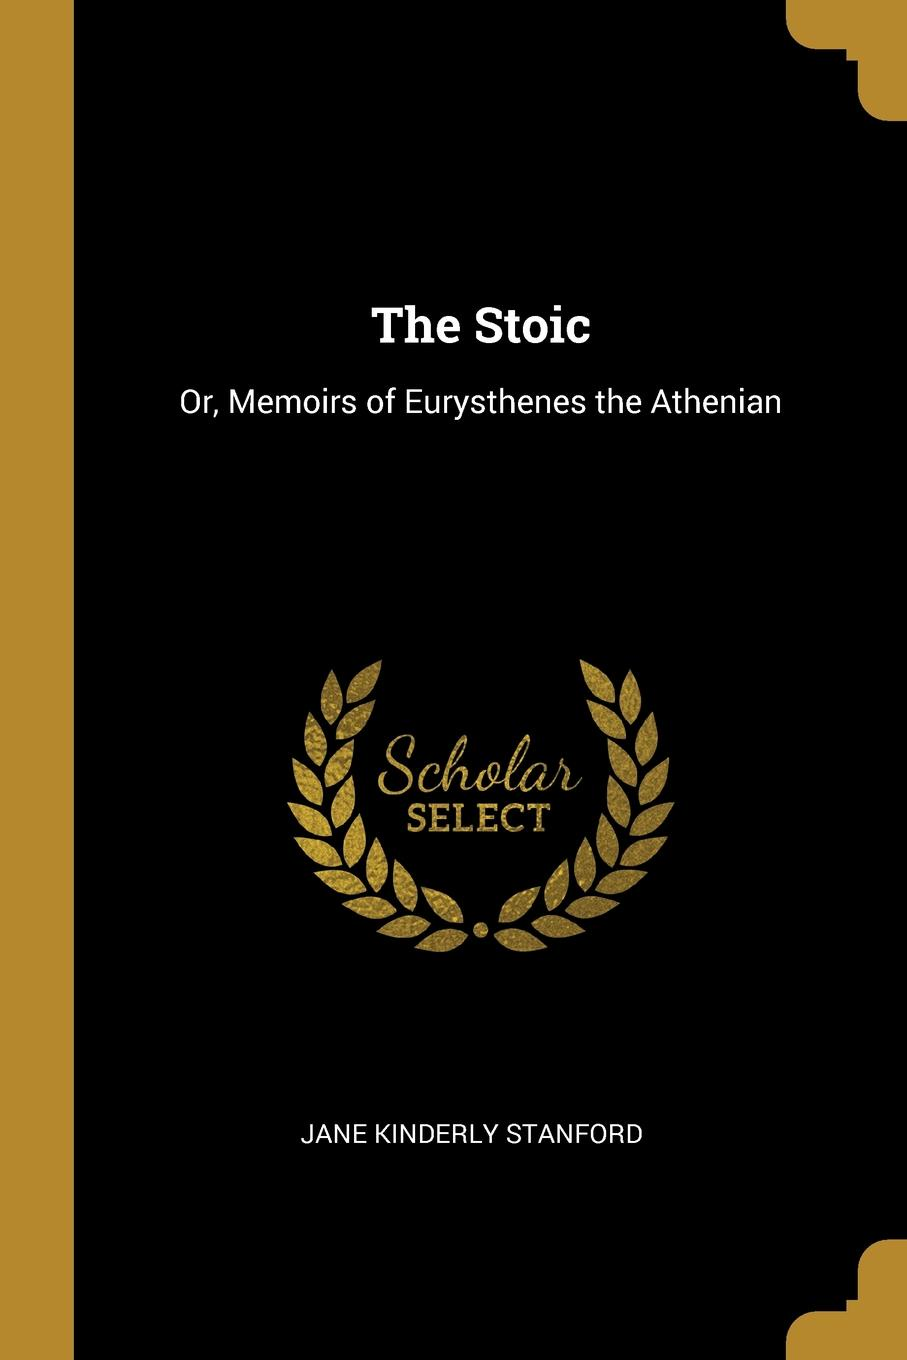 Jane Kinderly Stanford The Stoic. Or, Memoirs of Eurysthenes the Athenian